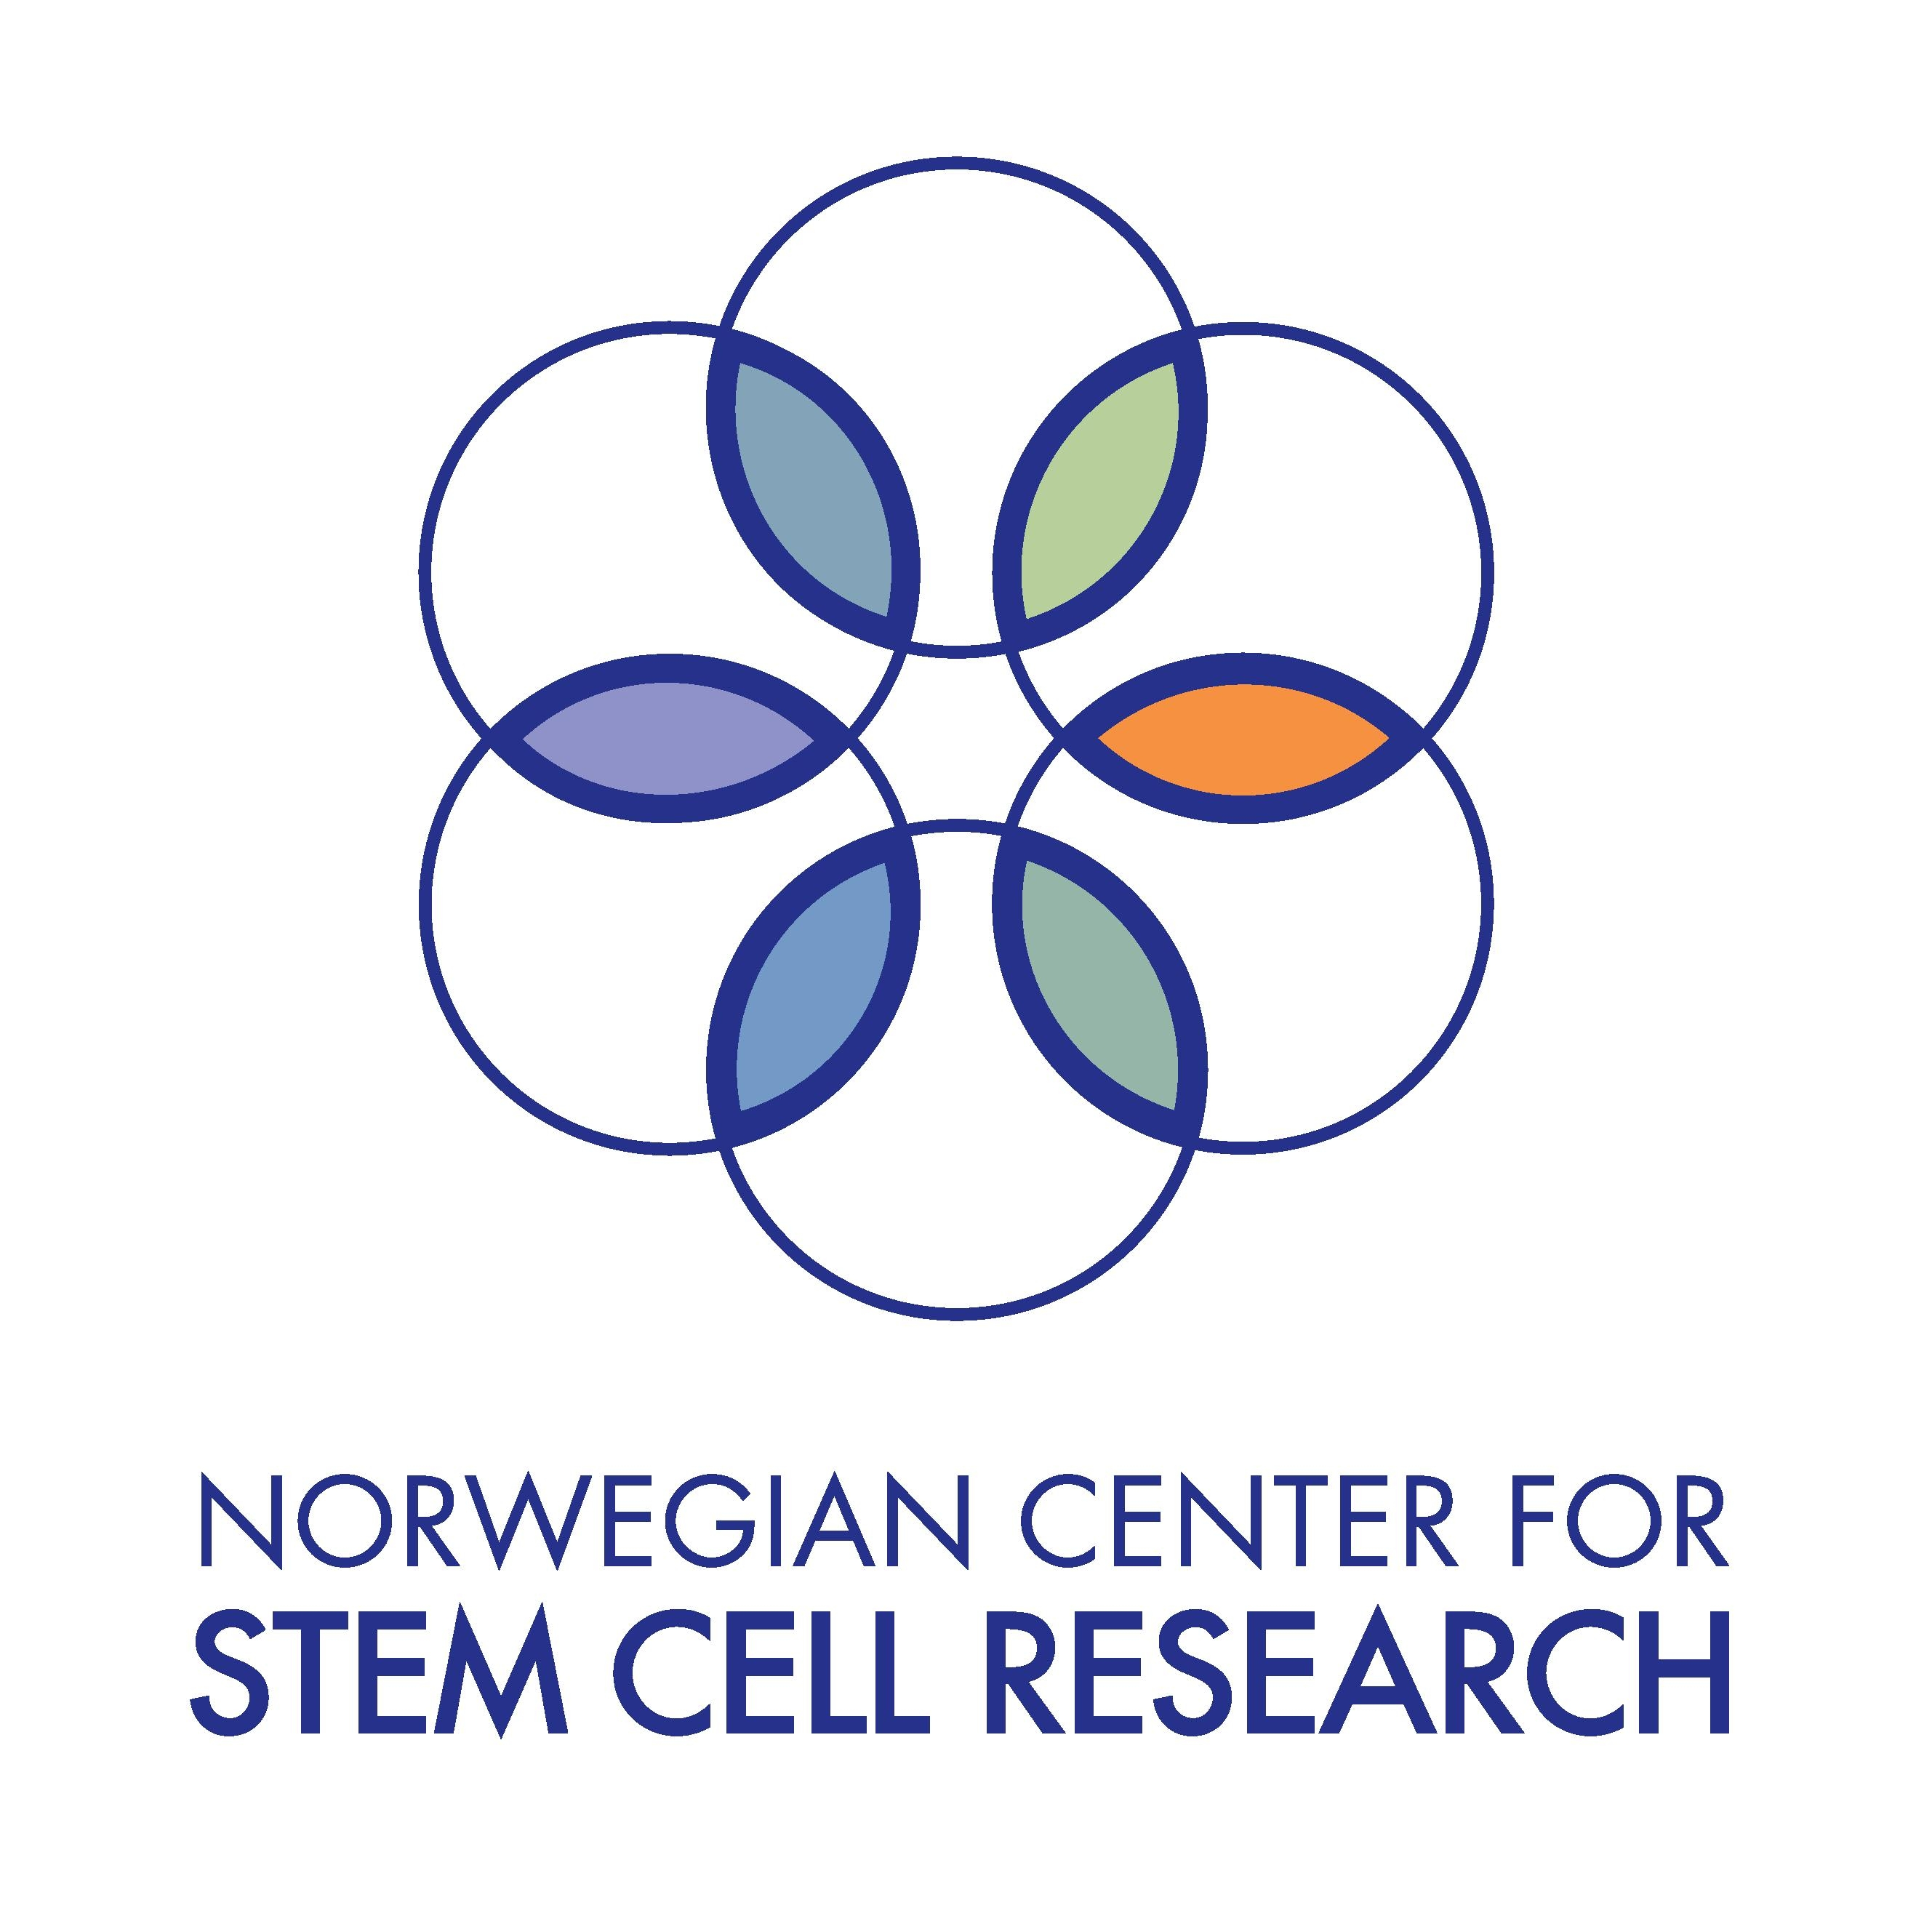 Norwegian Center for Stem Cell Research